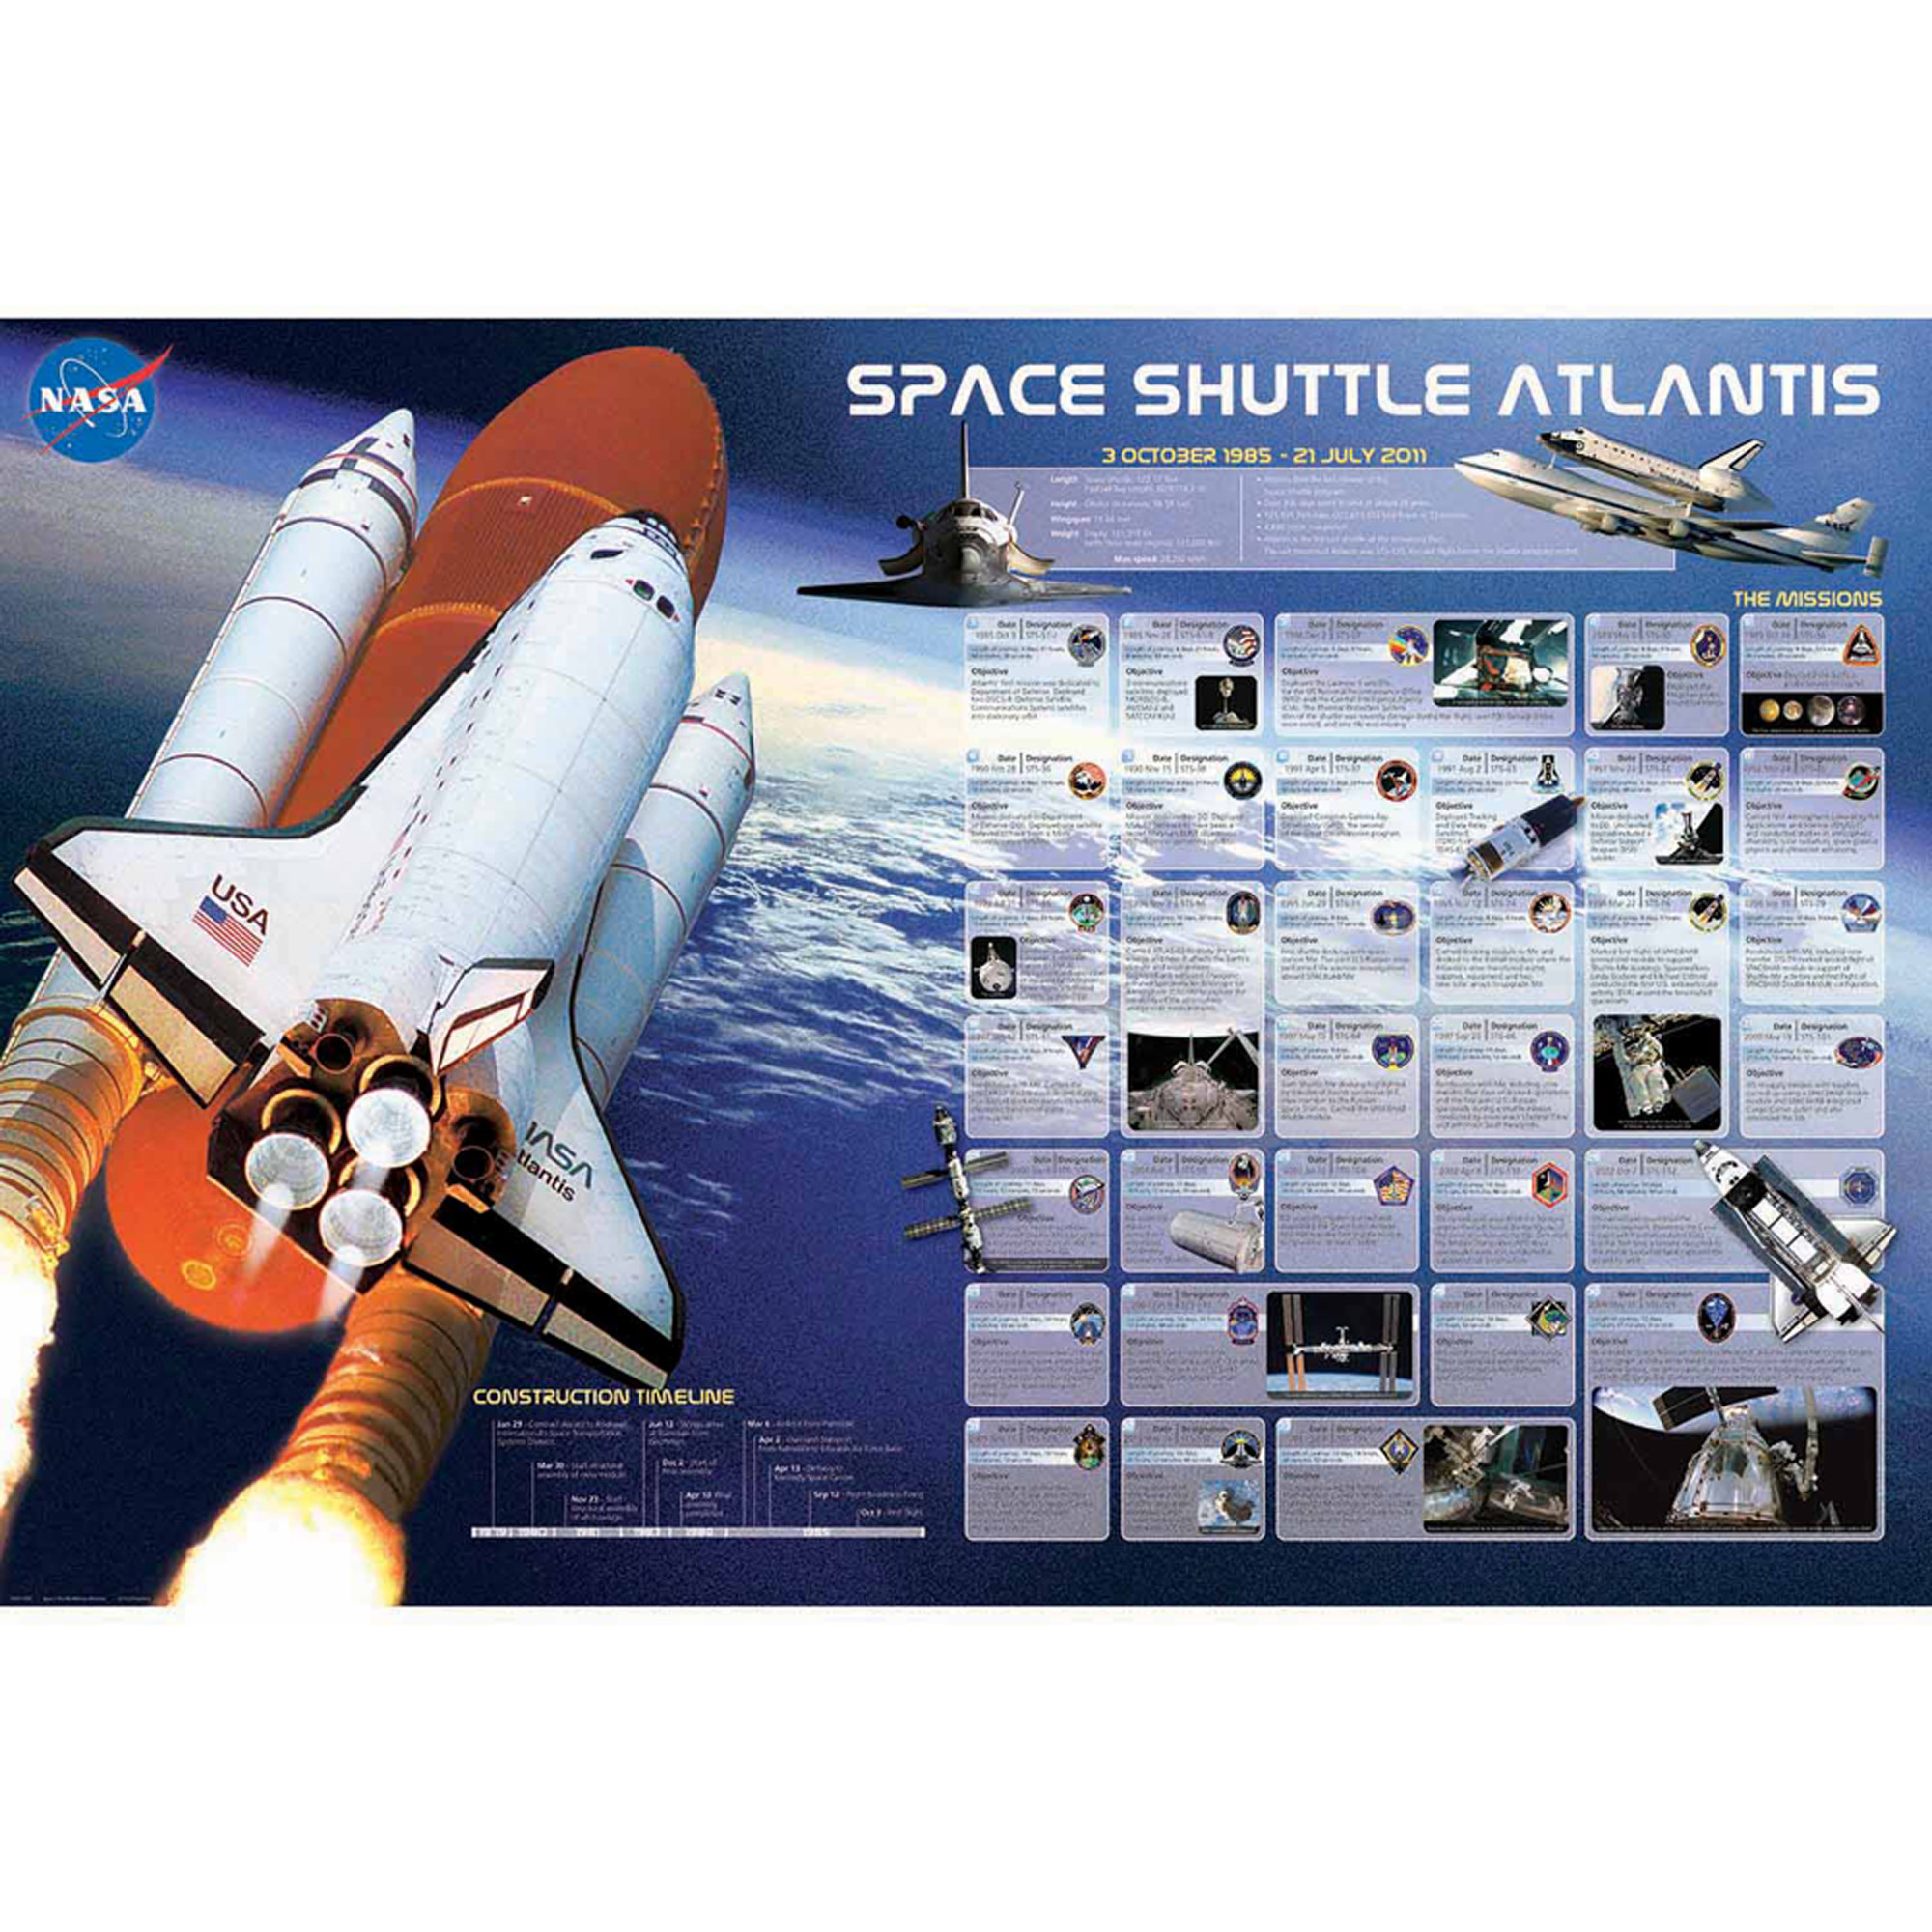 Atlantis Shuttle Missions Educational Chart